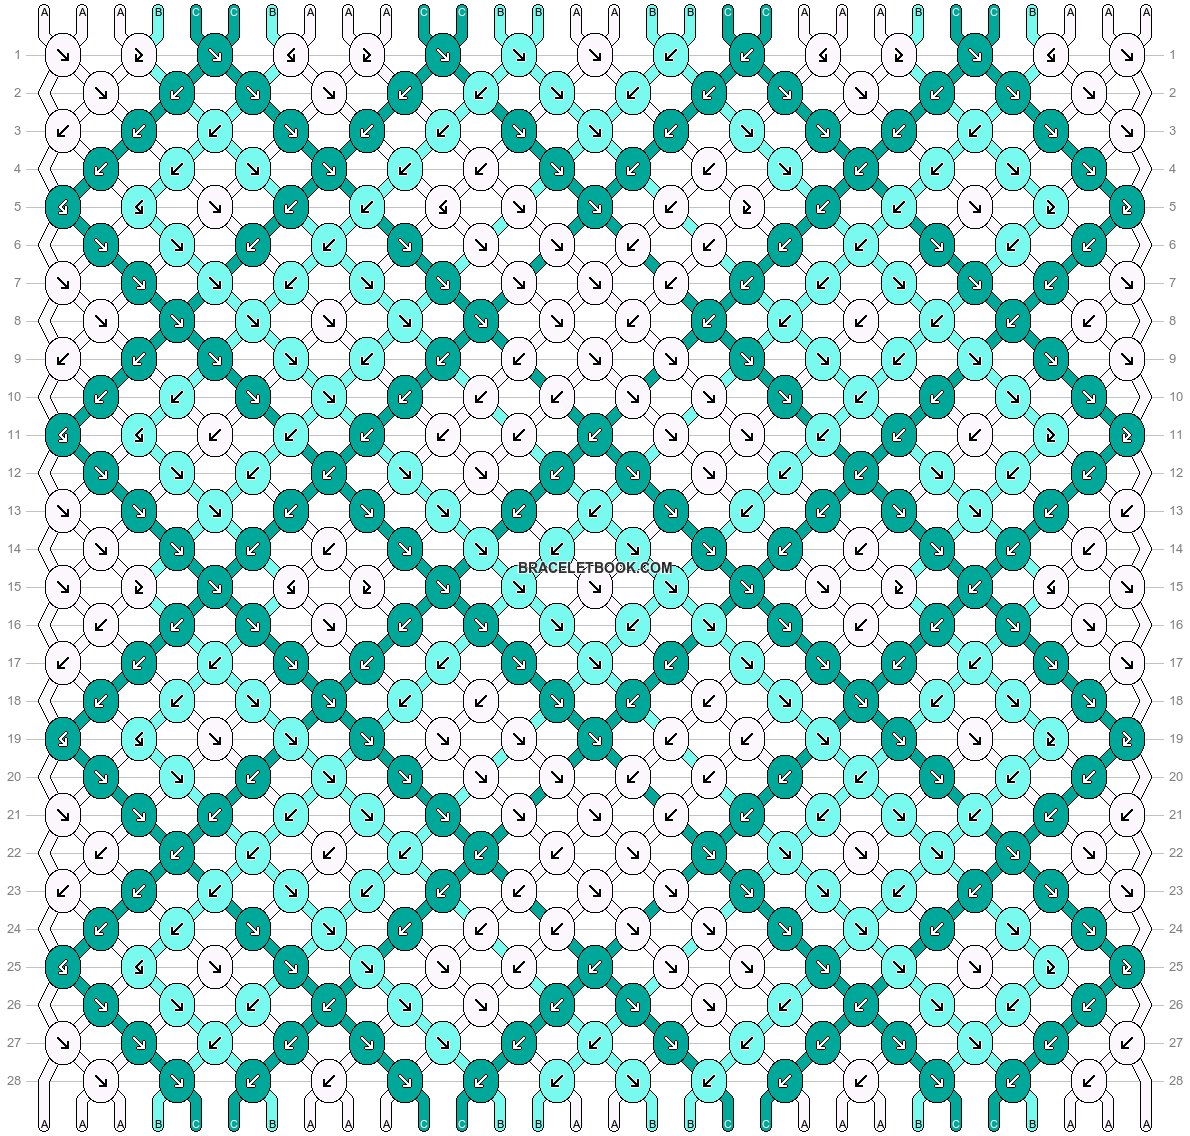 Normal Pattern #21952 added by dianis